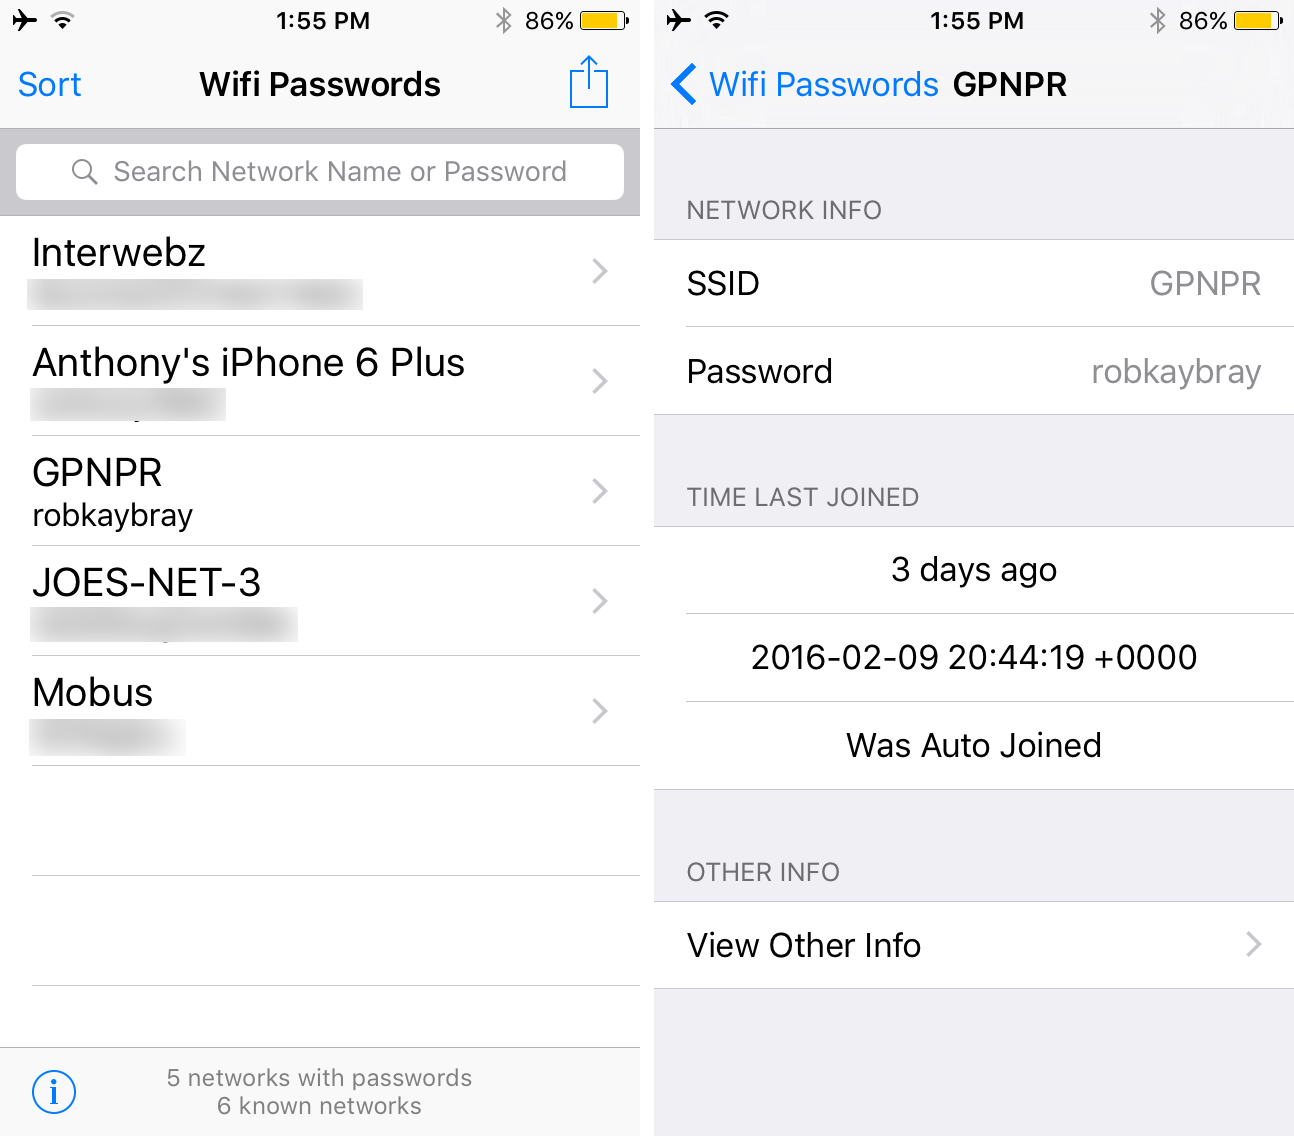 This jailbreak app for iOS shows all your Wi-Fi network passwords